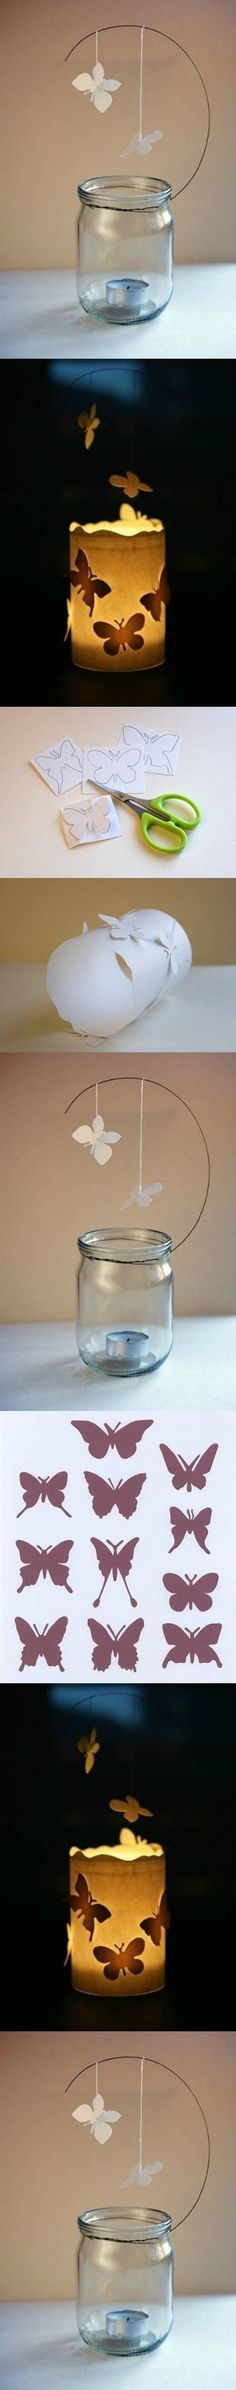 28 Beautiful Creative Ways of Repurposing Mason Jars